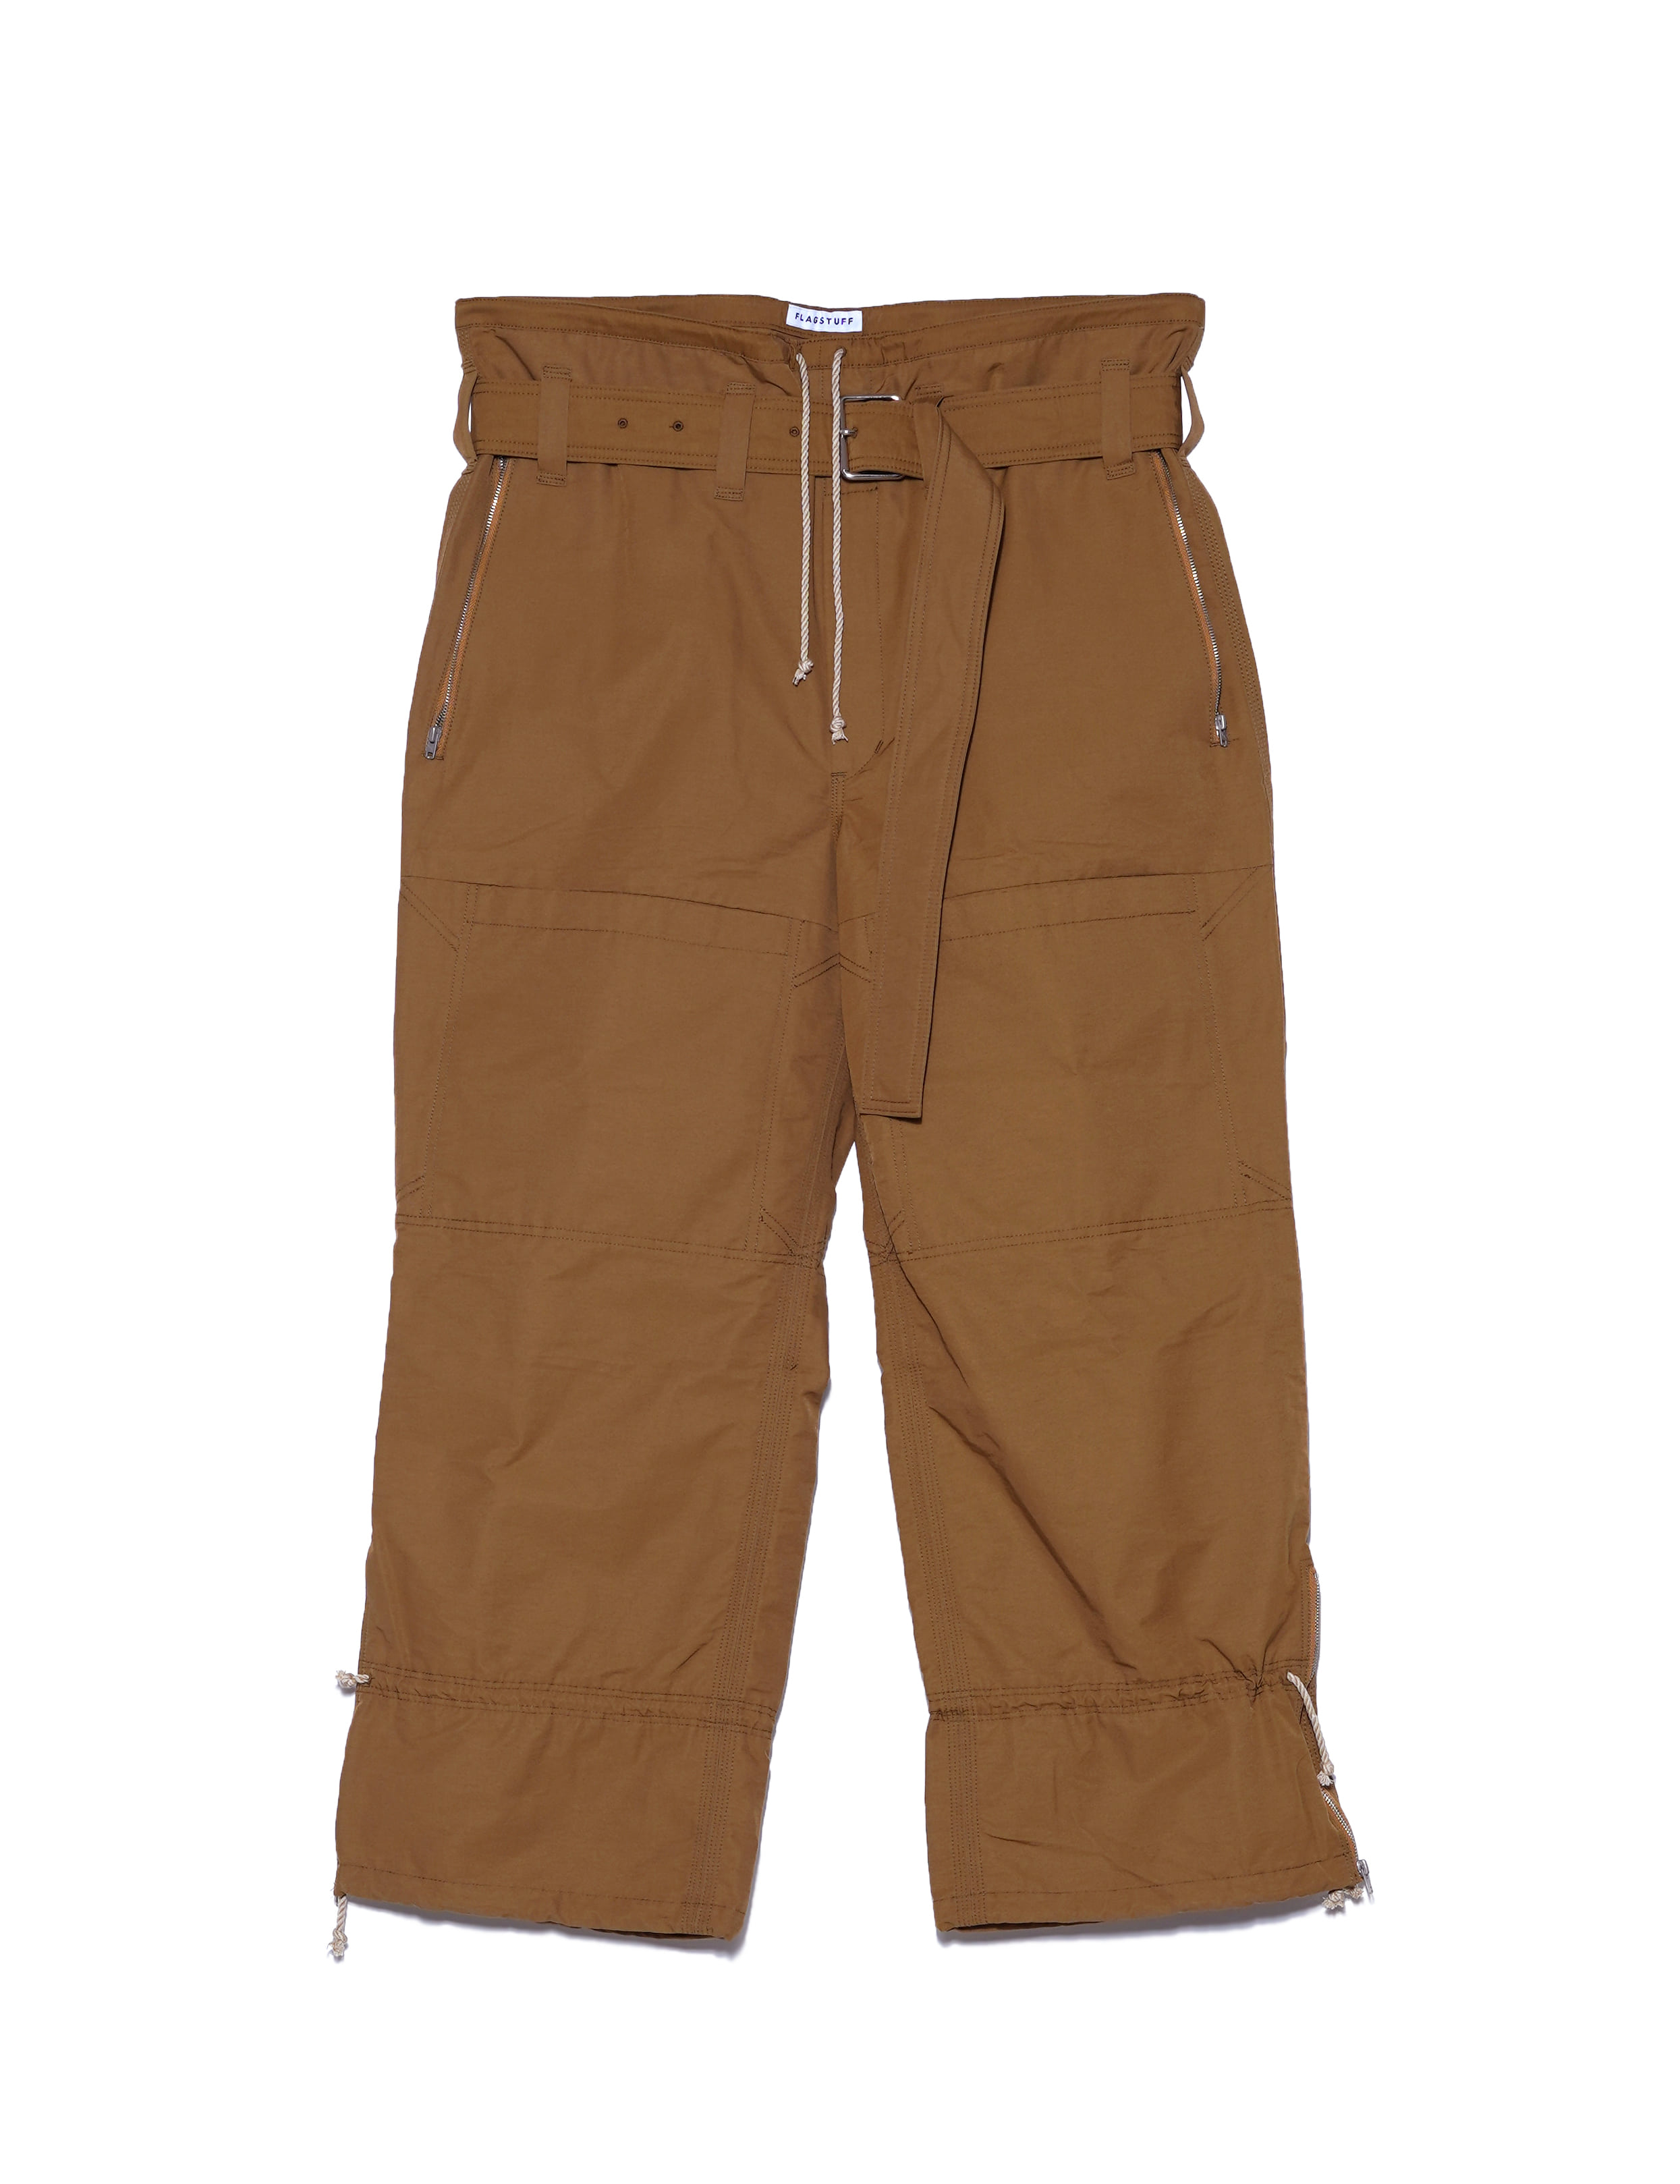 FLIGHT PANTS (KHAKI)